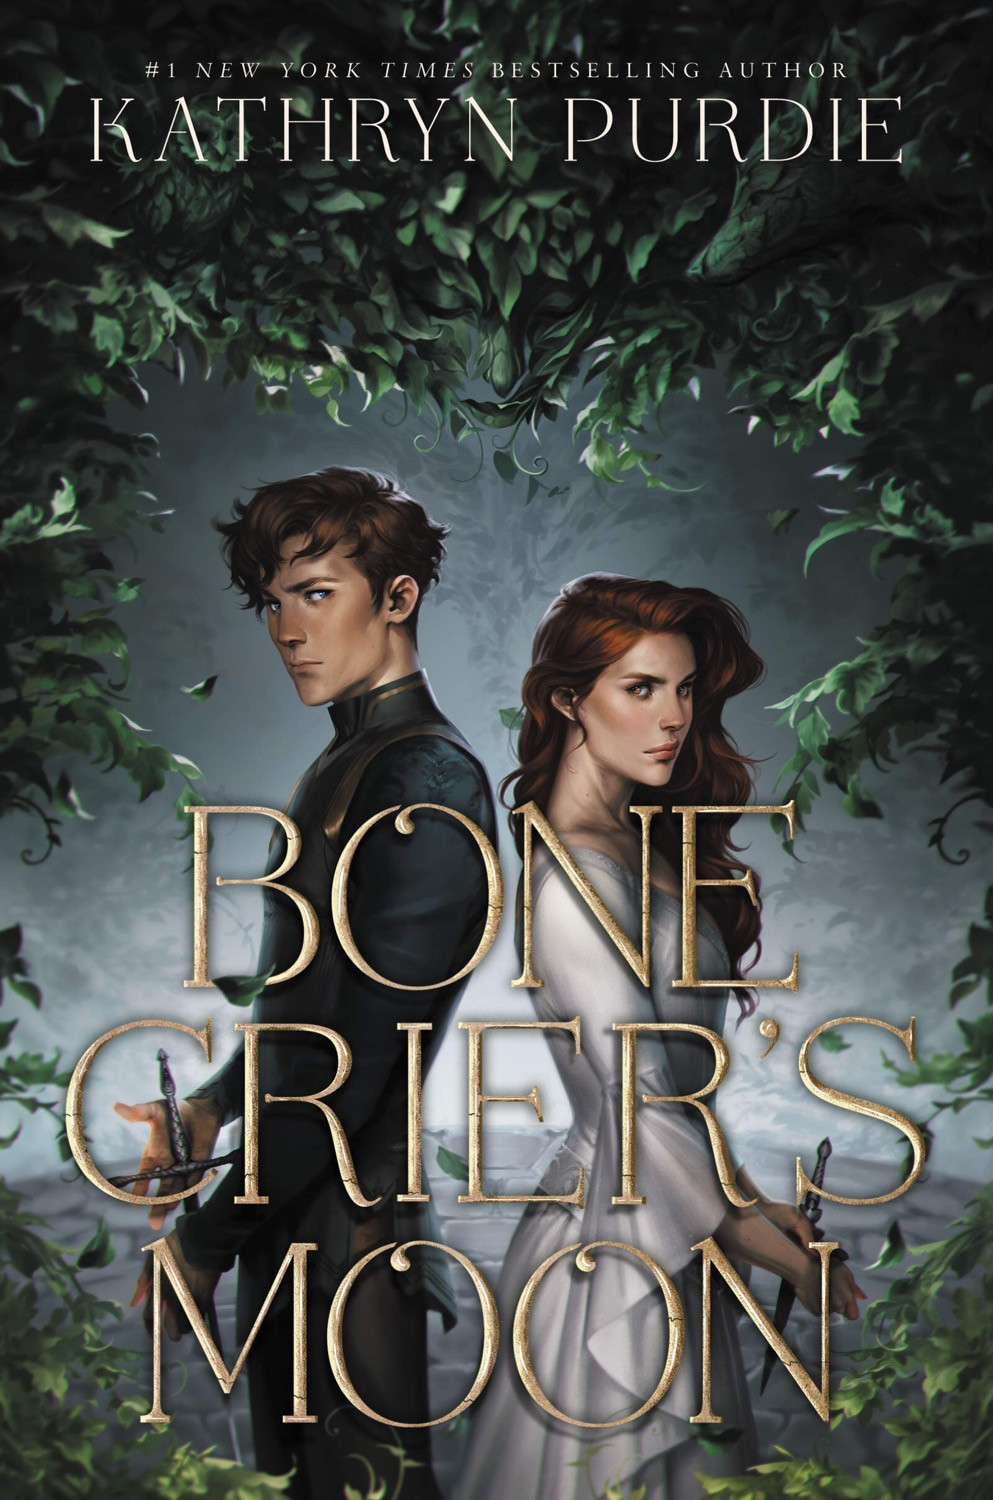 Cover of Bone Crier's Moon by Kathryn Purdie